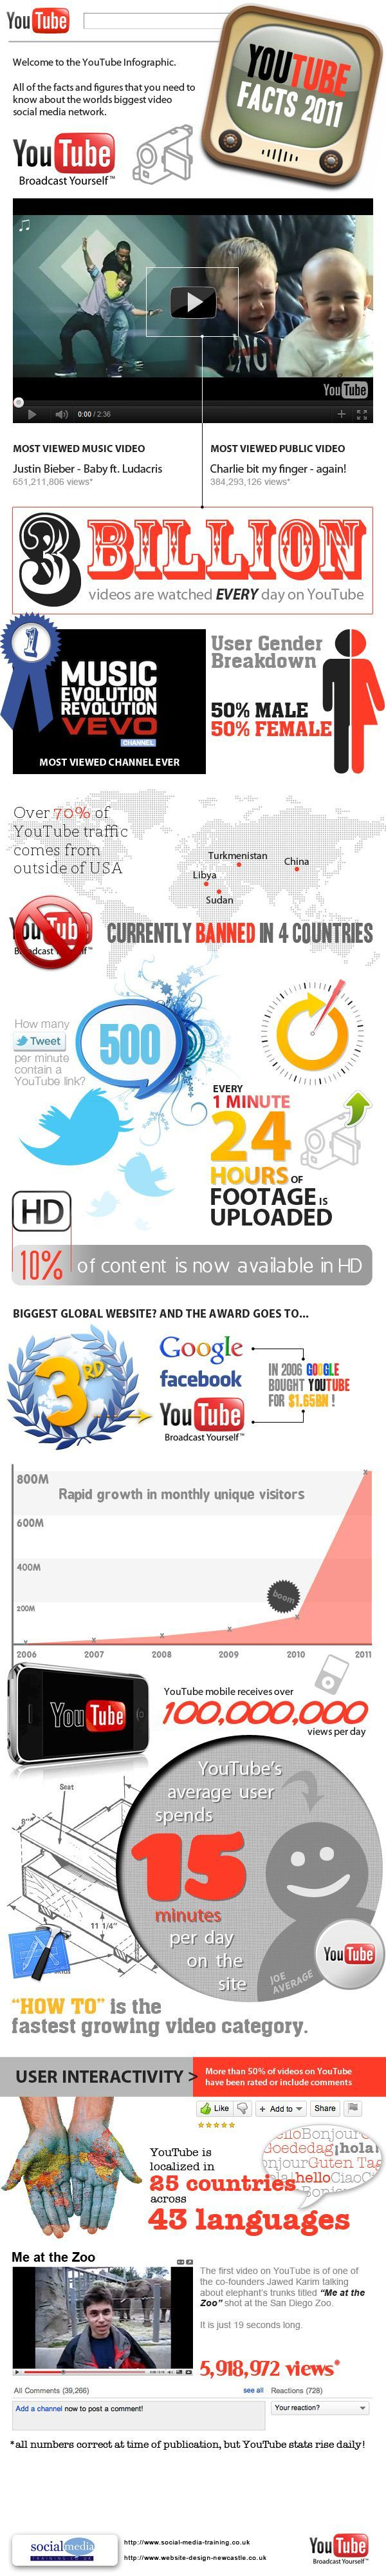 Infographie Youtube 2011